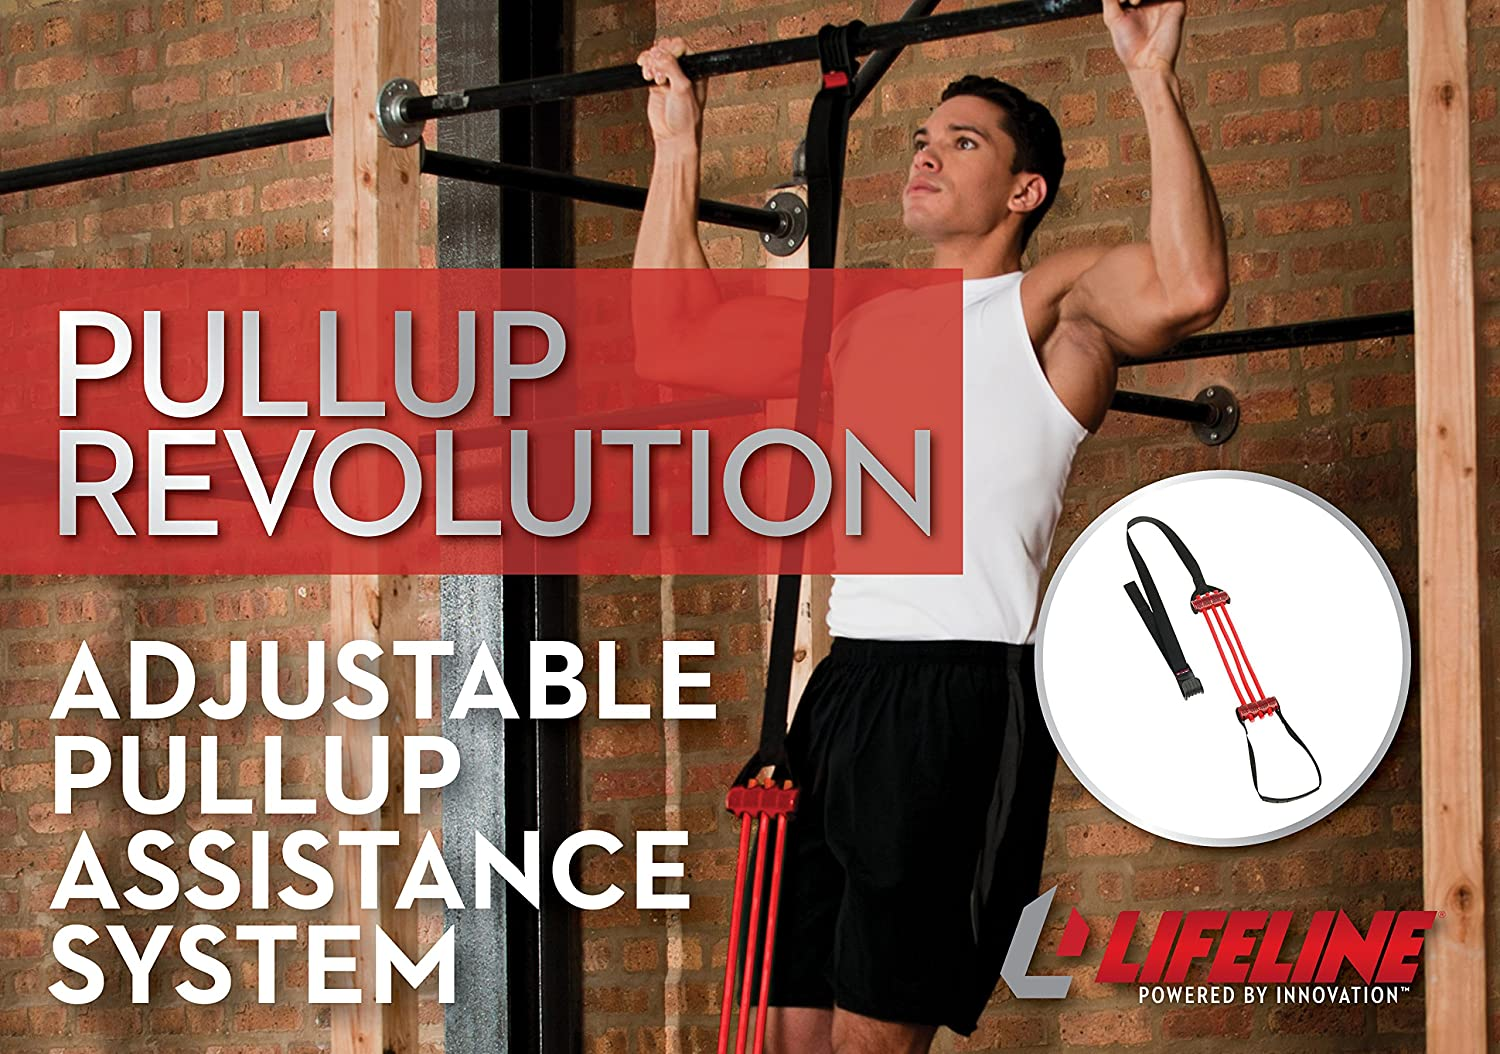 Shoulders and Chest Strength Lifeline Pull up Assist Band Improve Arm